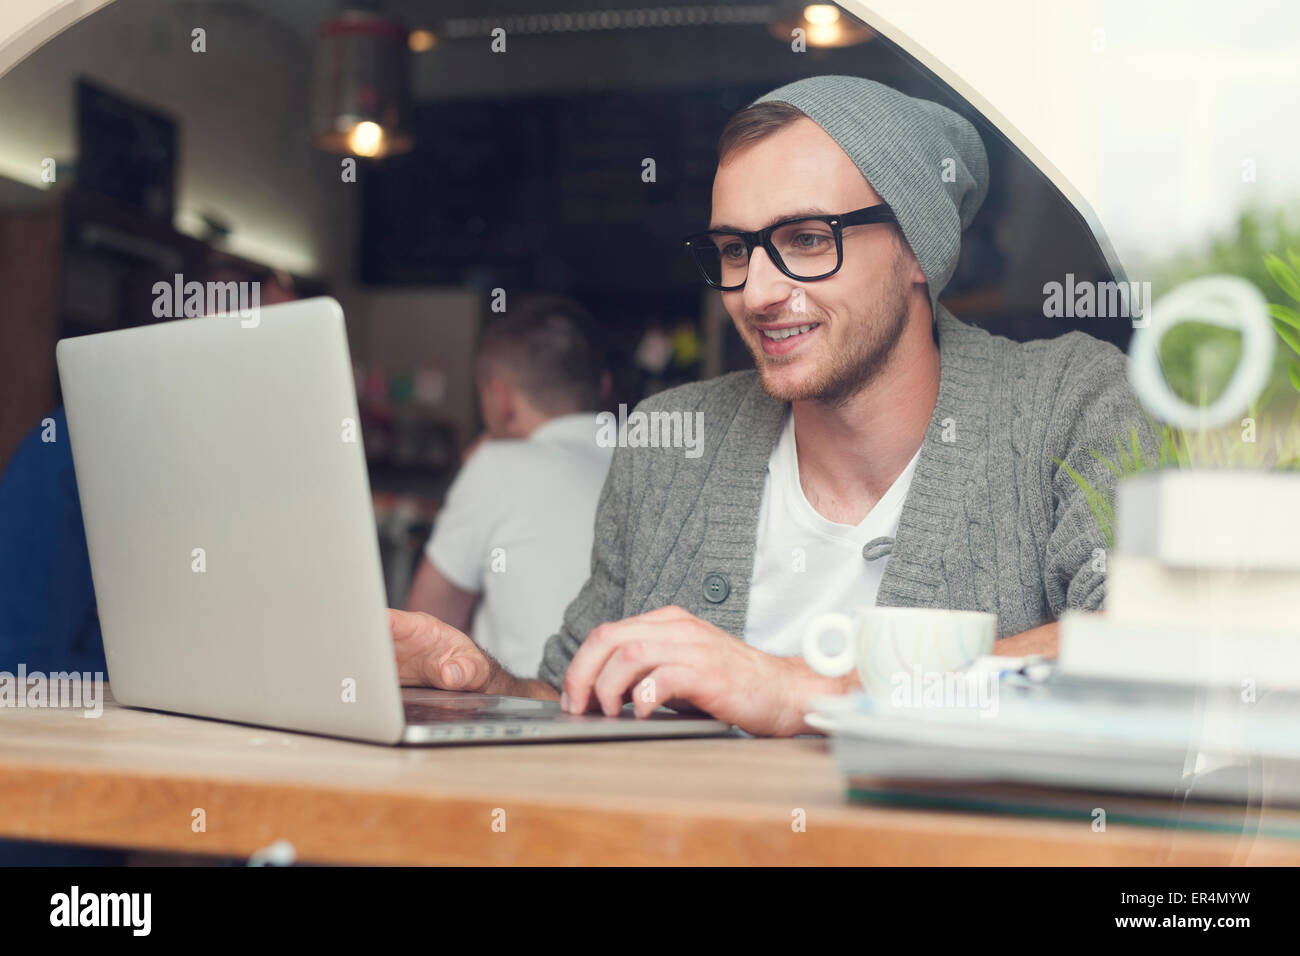 Handsome hipster using laptop at cafe. Krakow, Poland - Stock Image